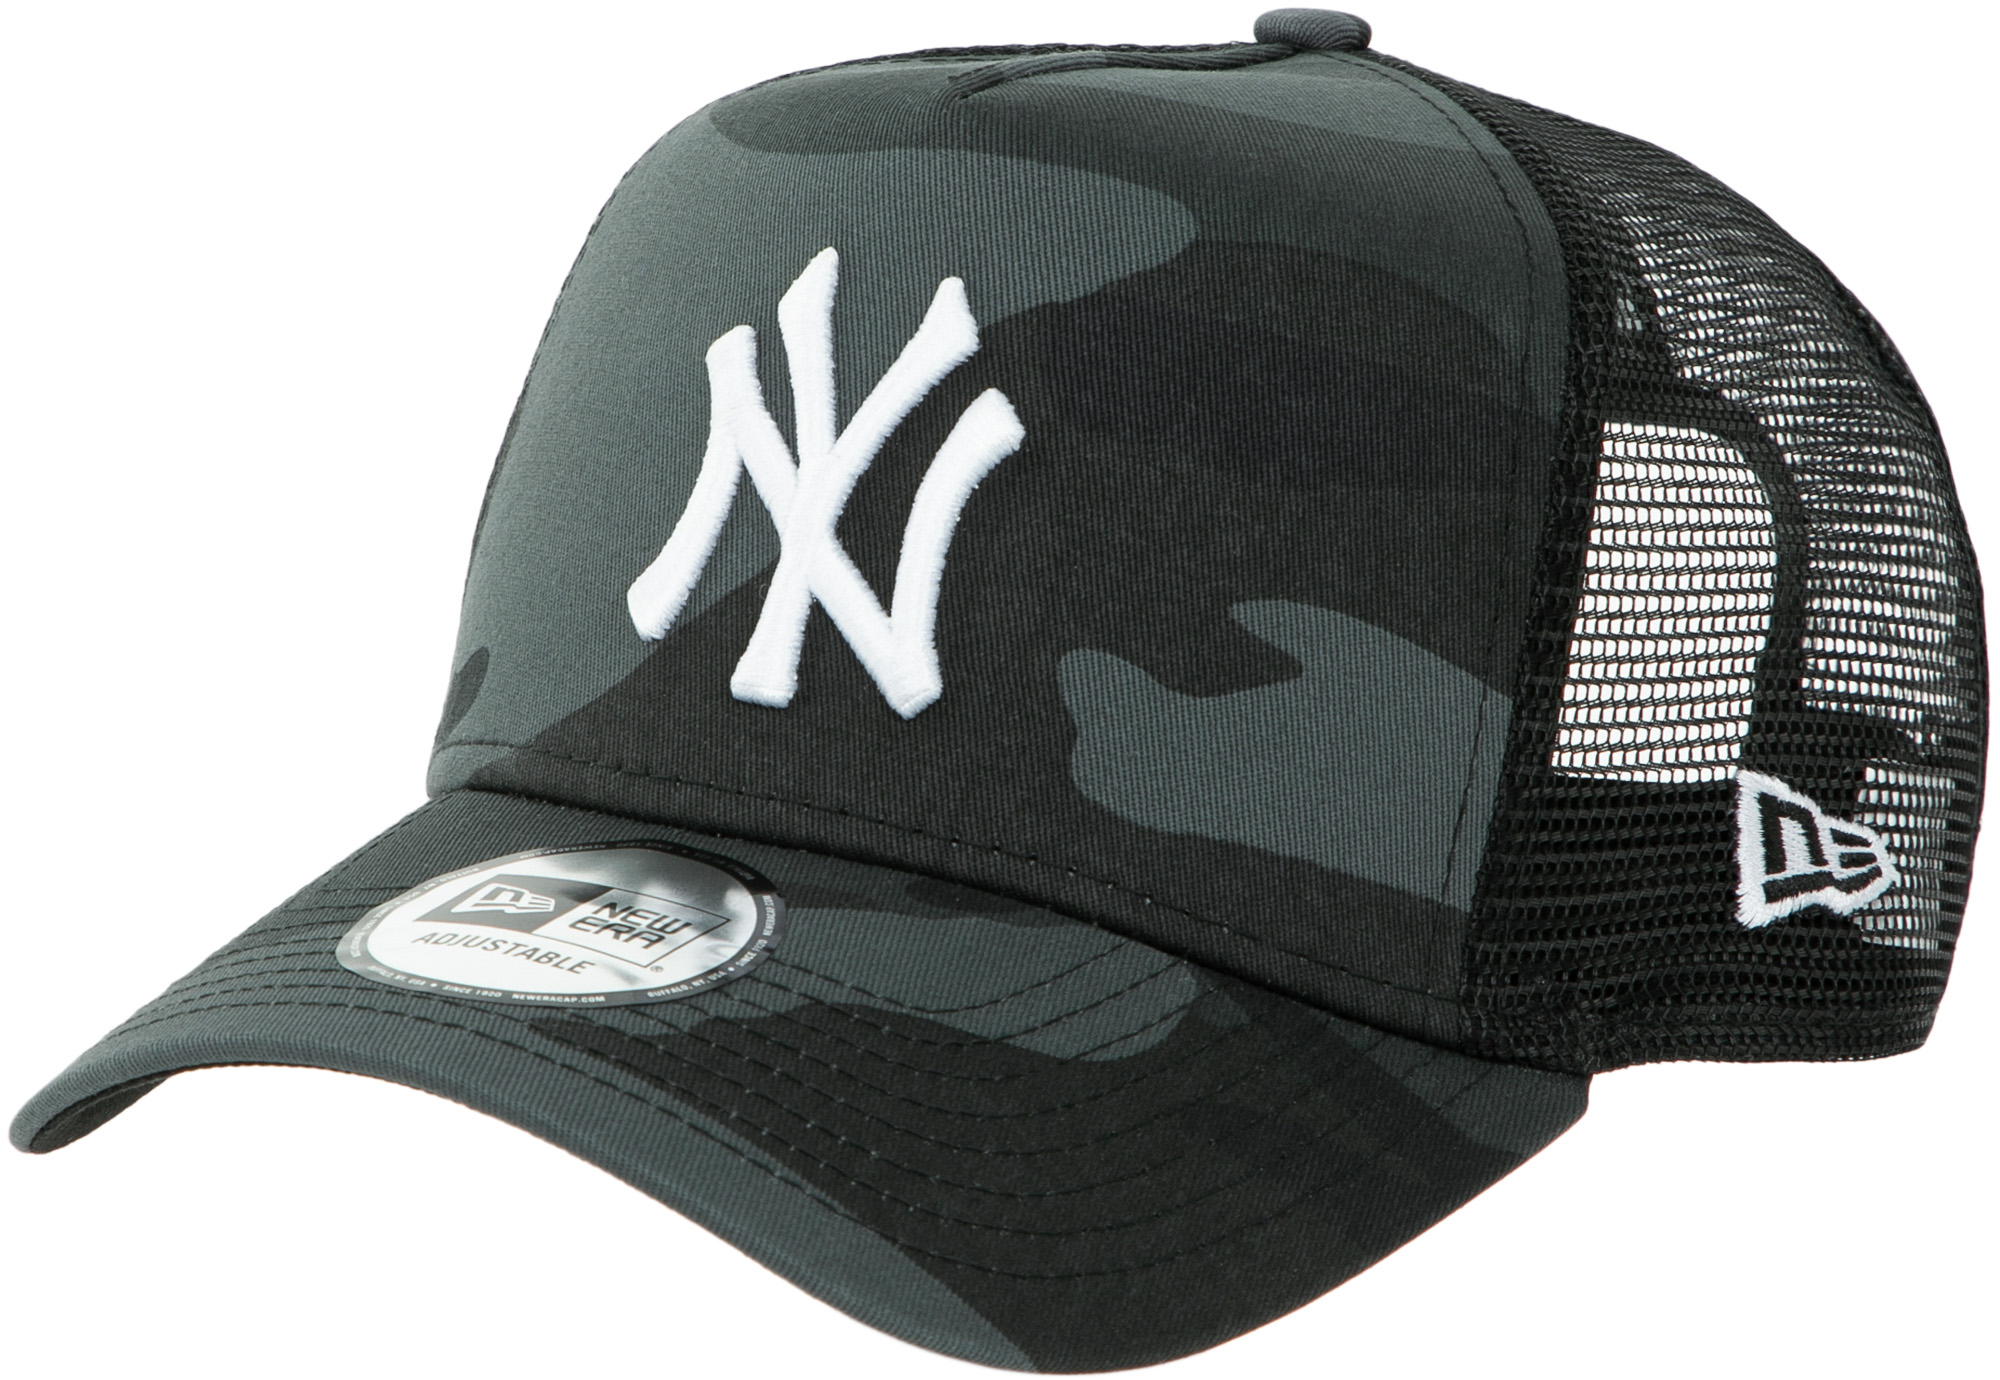 New Era Бейсболка мужская New Era New York Yankees majorleaguebaseball mlb new york yankees nyy home yankee stadium 3d puzzle model paper